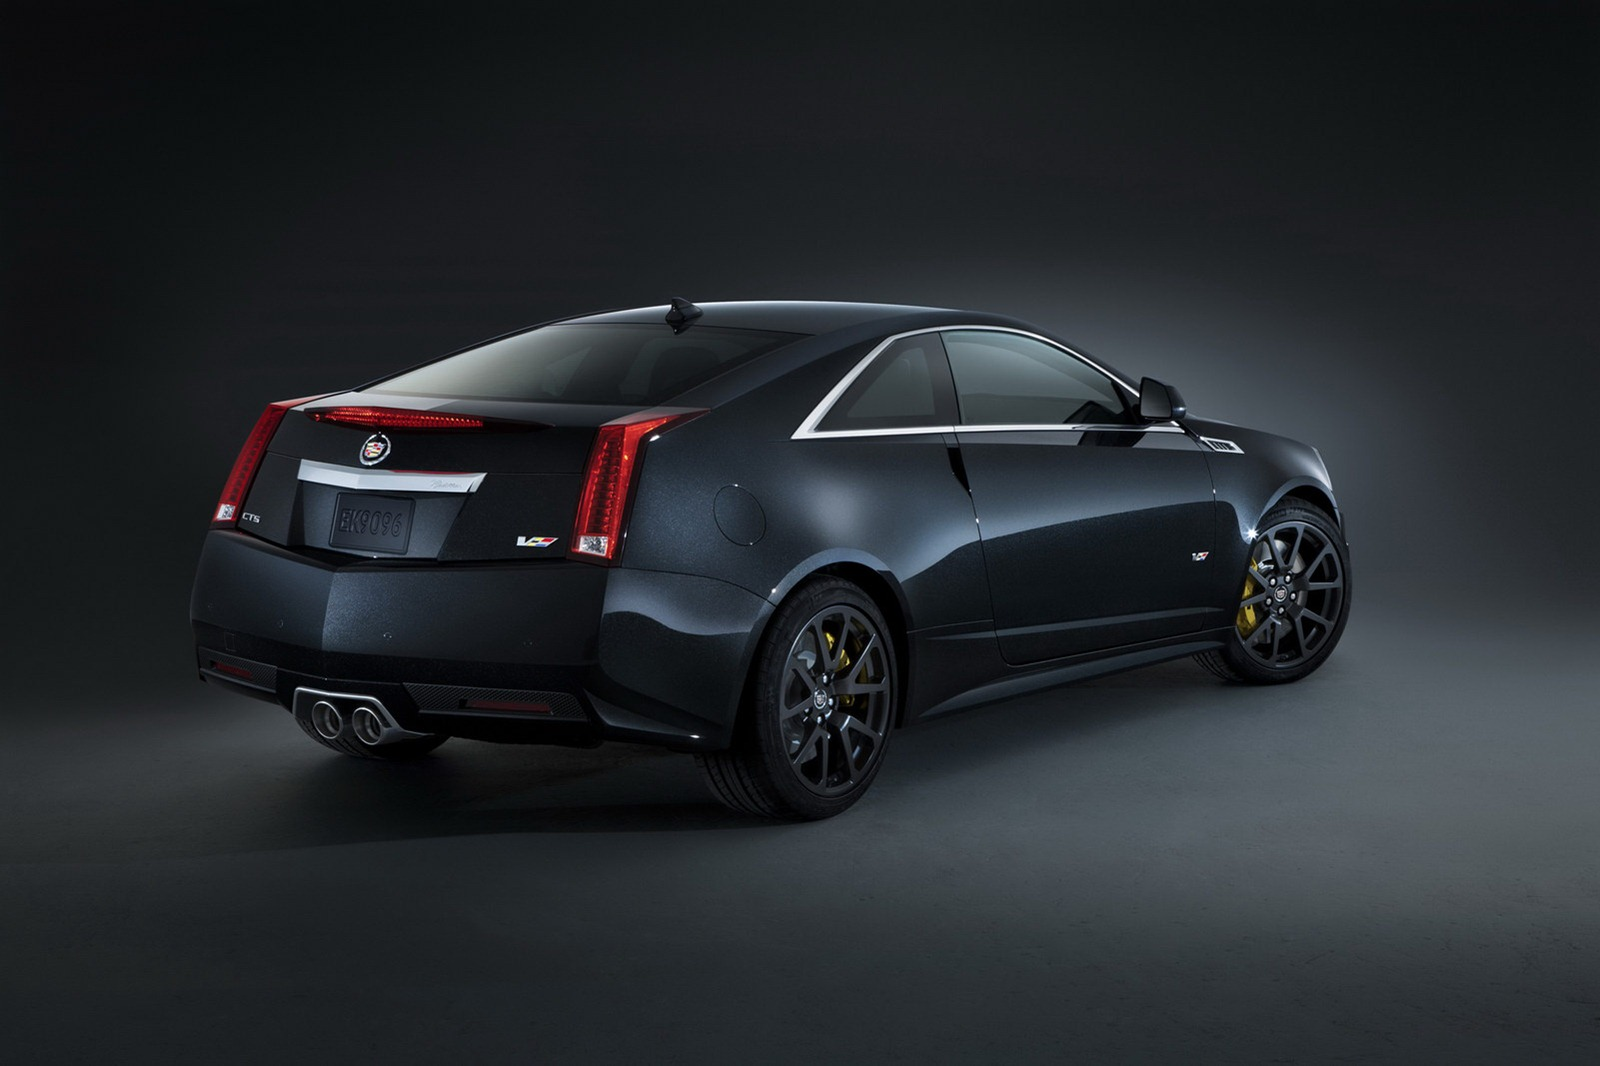 2013 Cadillac Cts-v Coupe #7